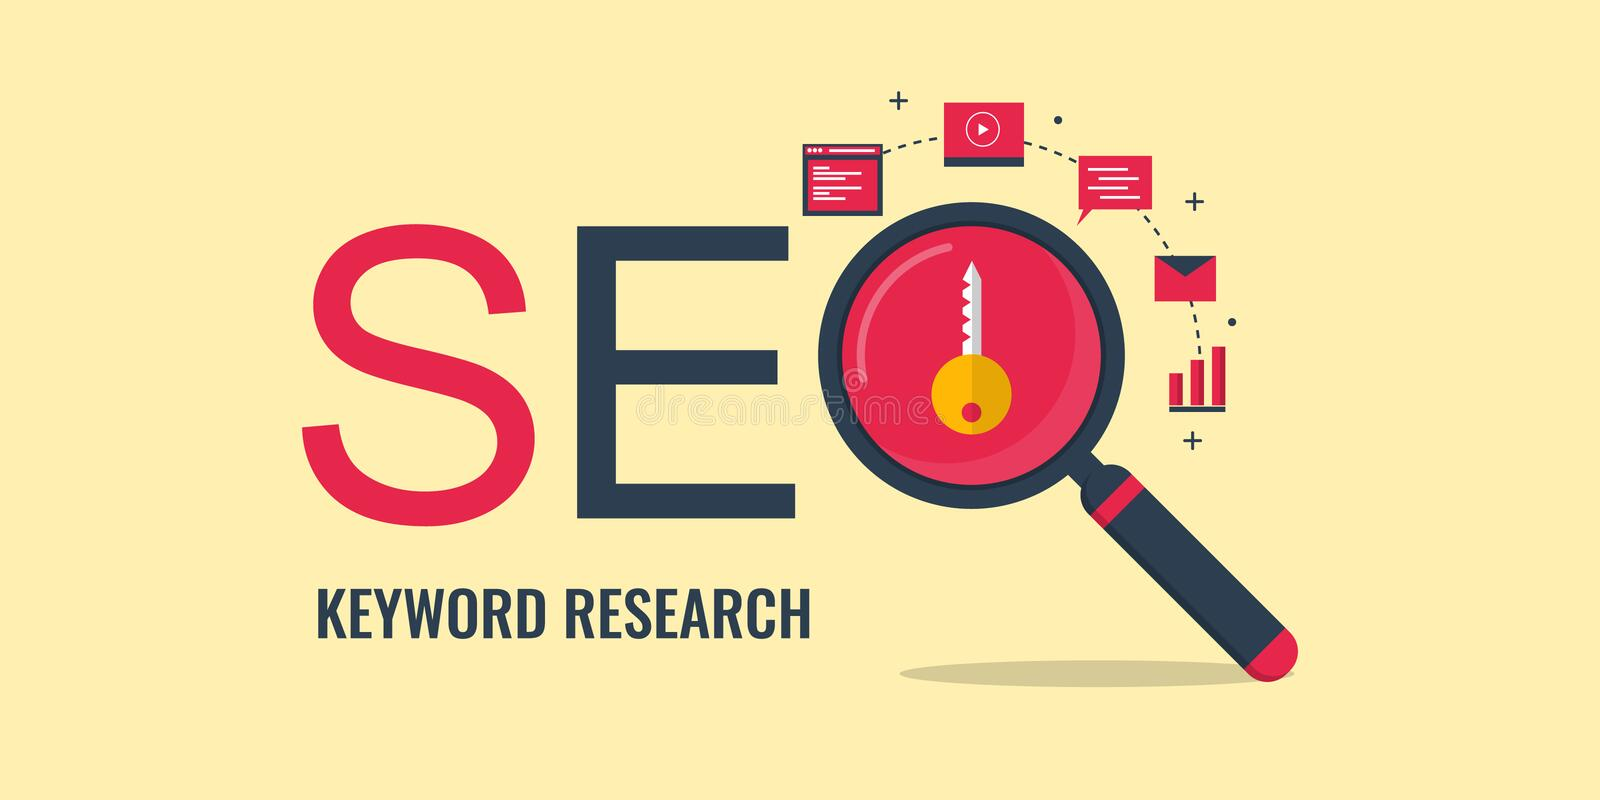 Keyword research - Search engine optimization - Keyword seo. Flat design seo banner. vector illustration